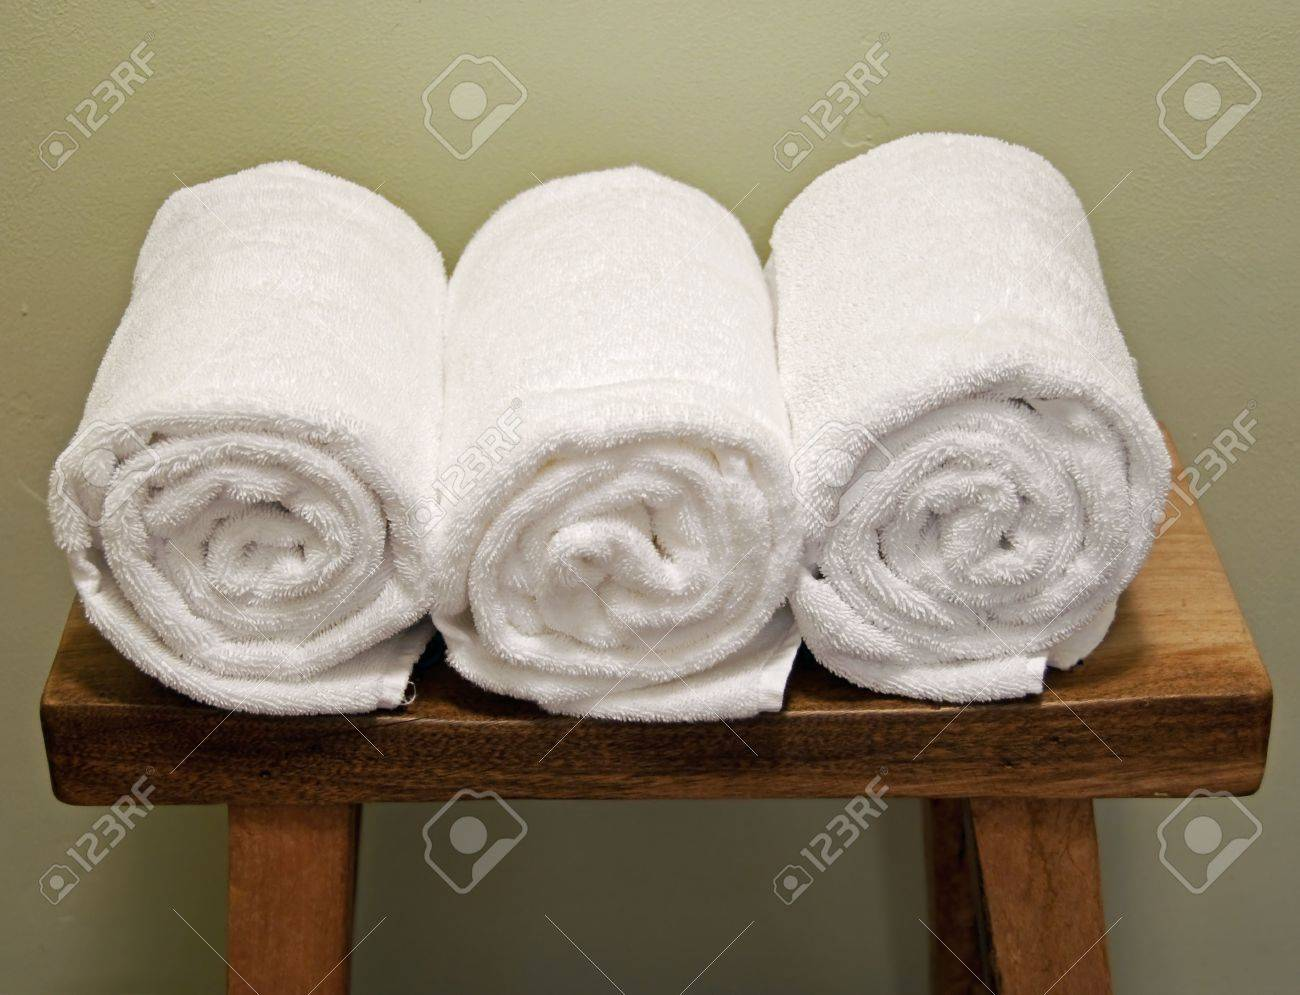 clean rolls of towels on a bench - 5744908